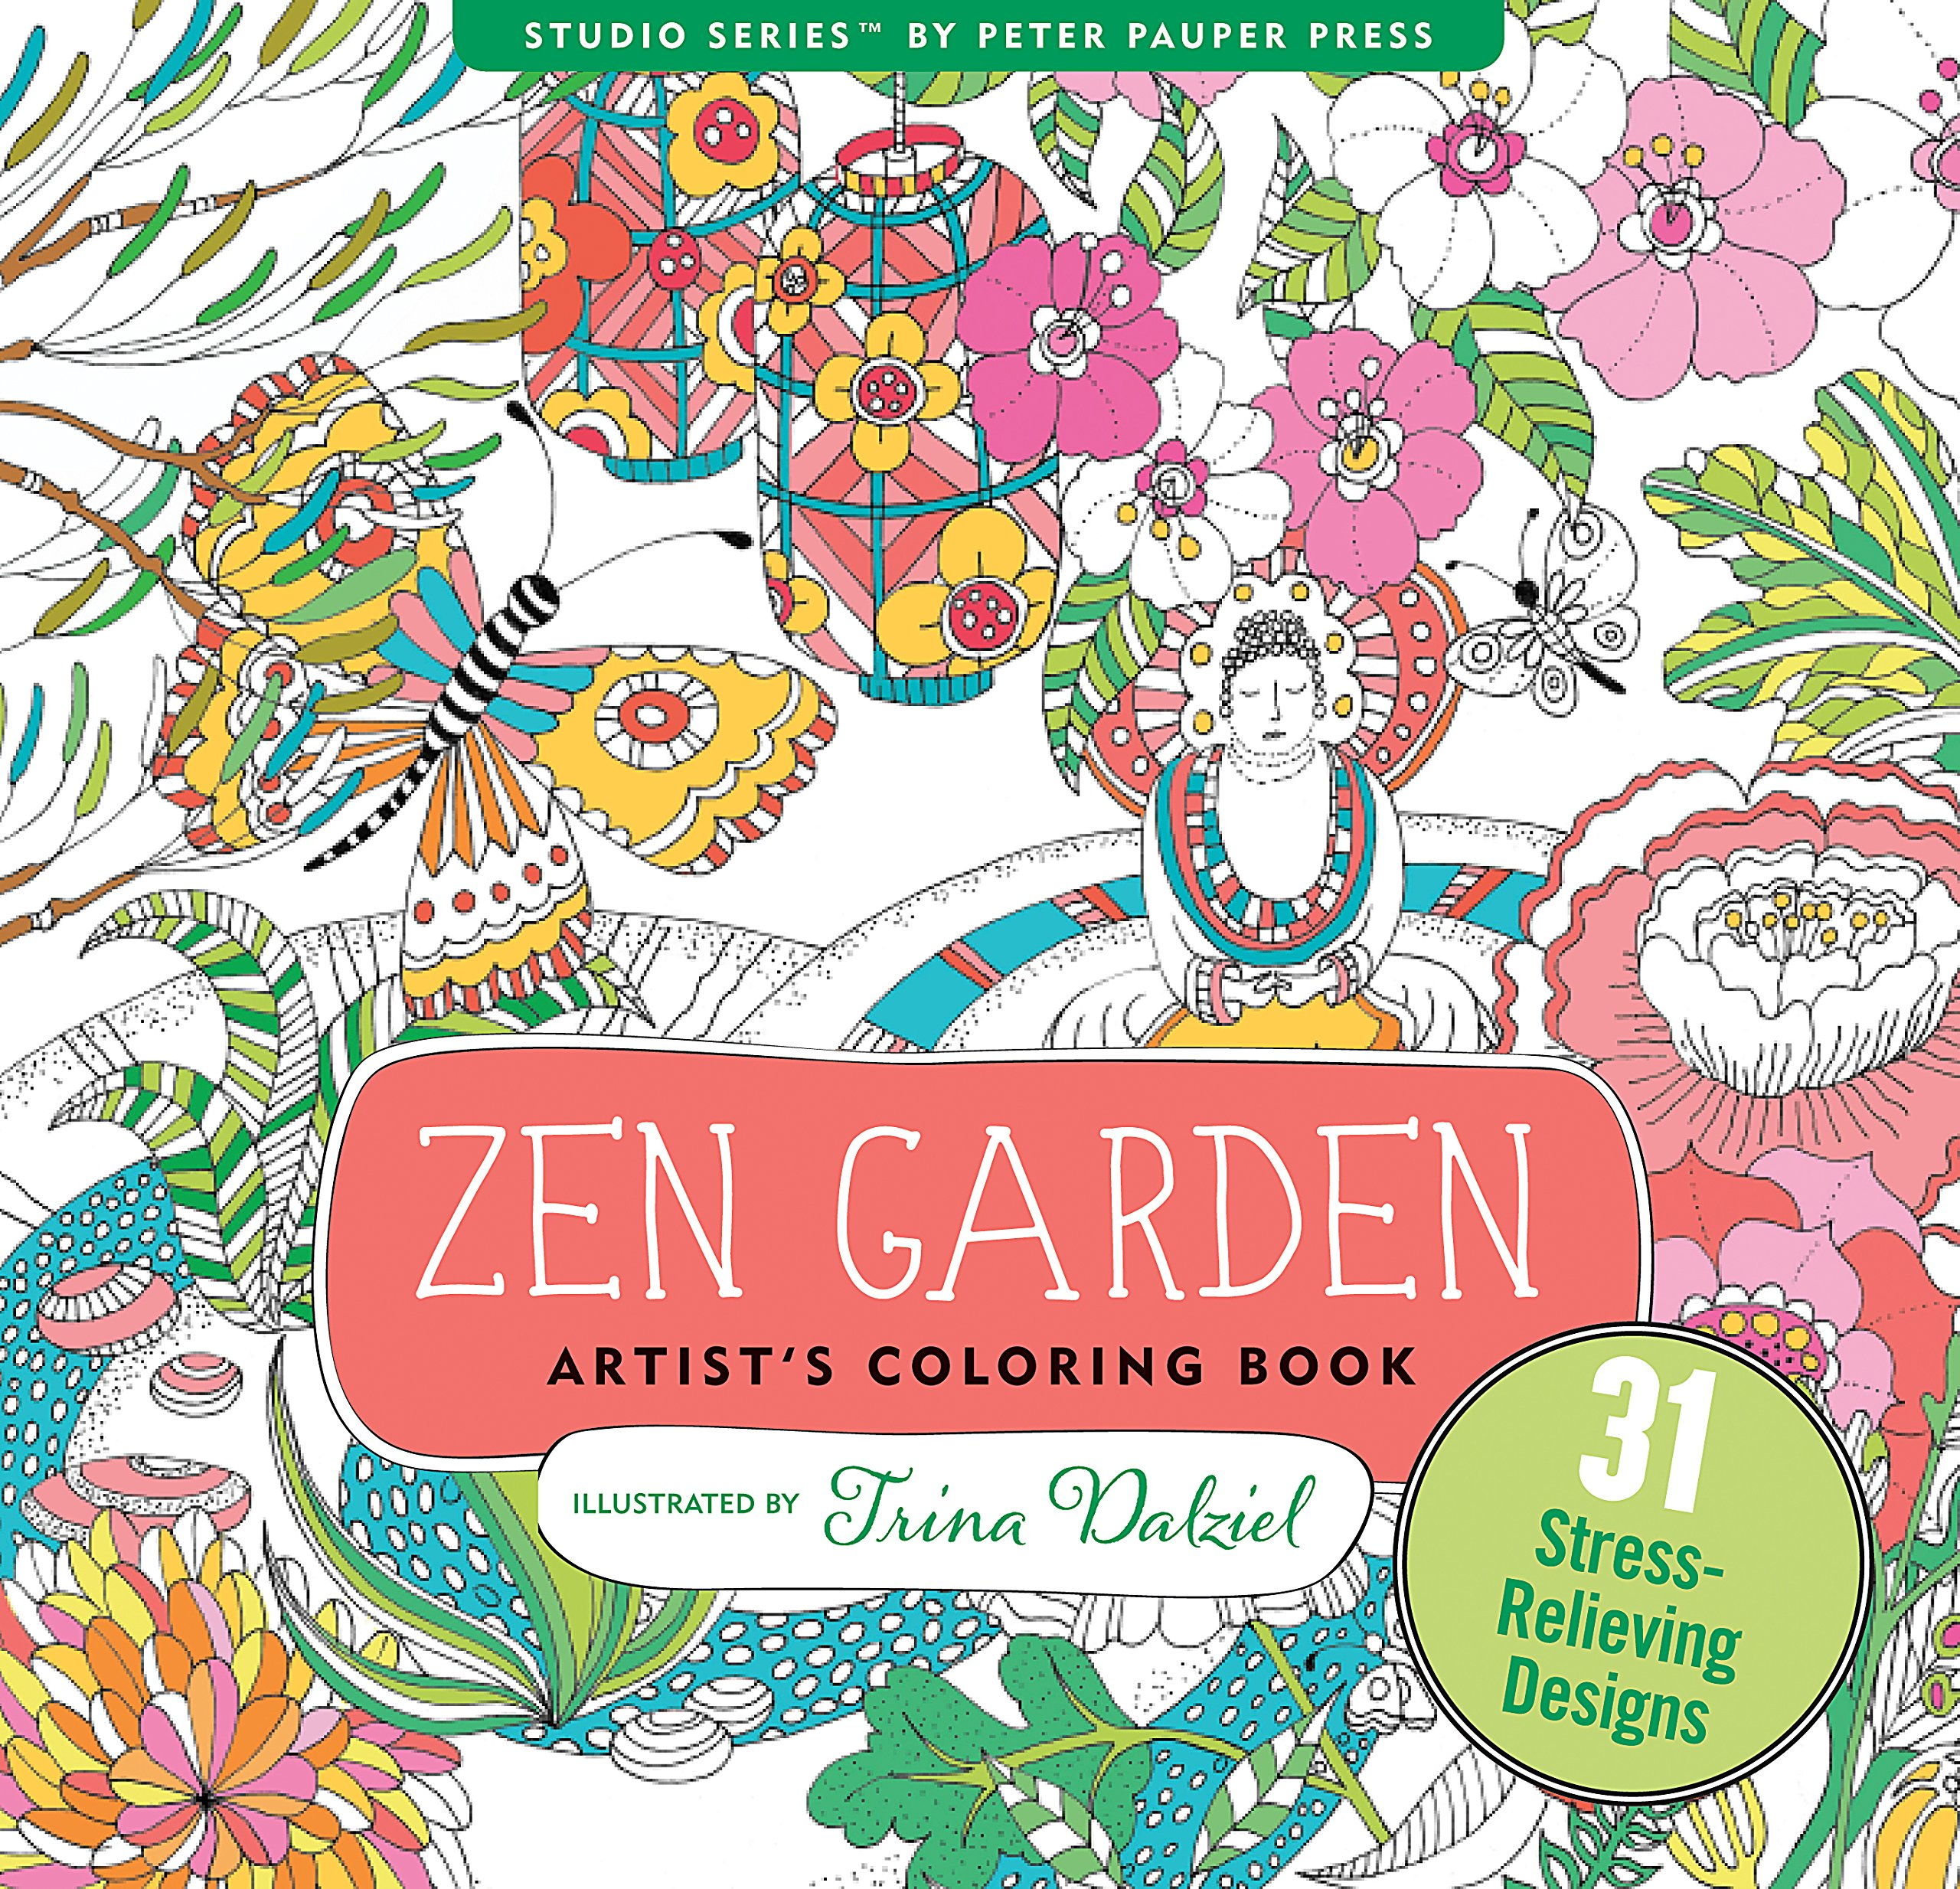 Zen coloring books for adults app - Zen Garden Adult Coloring Book 31 Stress Relieving Designs Artists Coloring Books Peter Pauper Press 9781441320063 Amazon Com Books